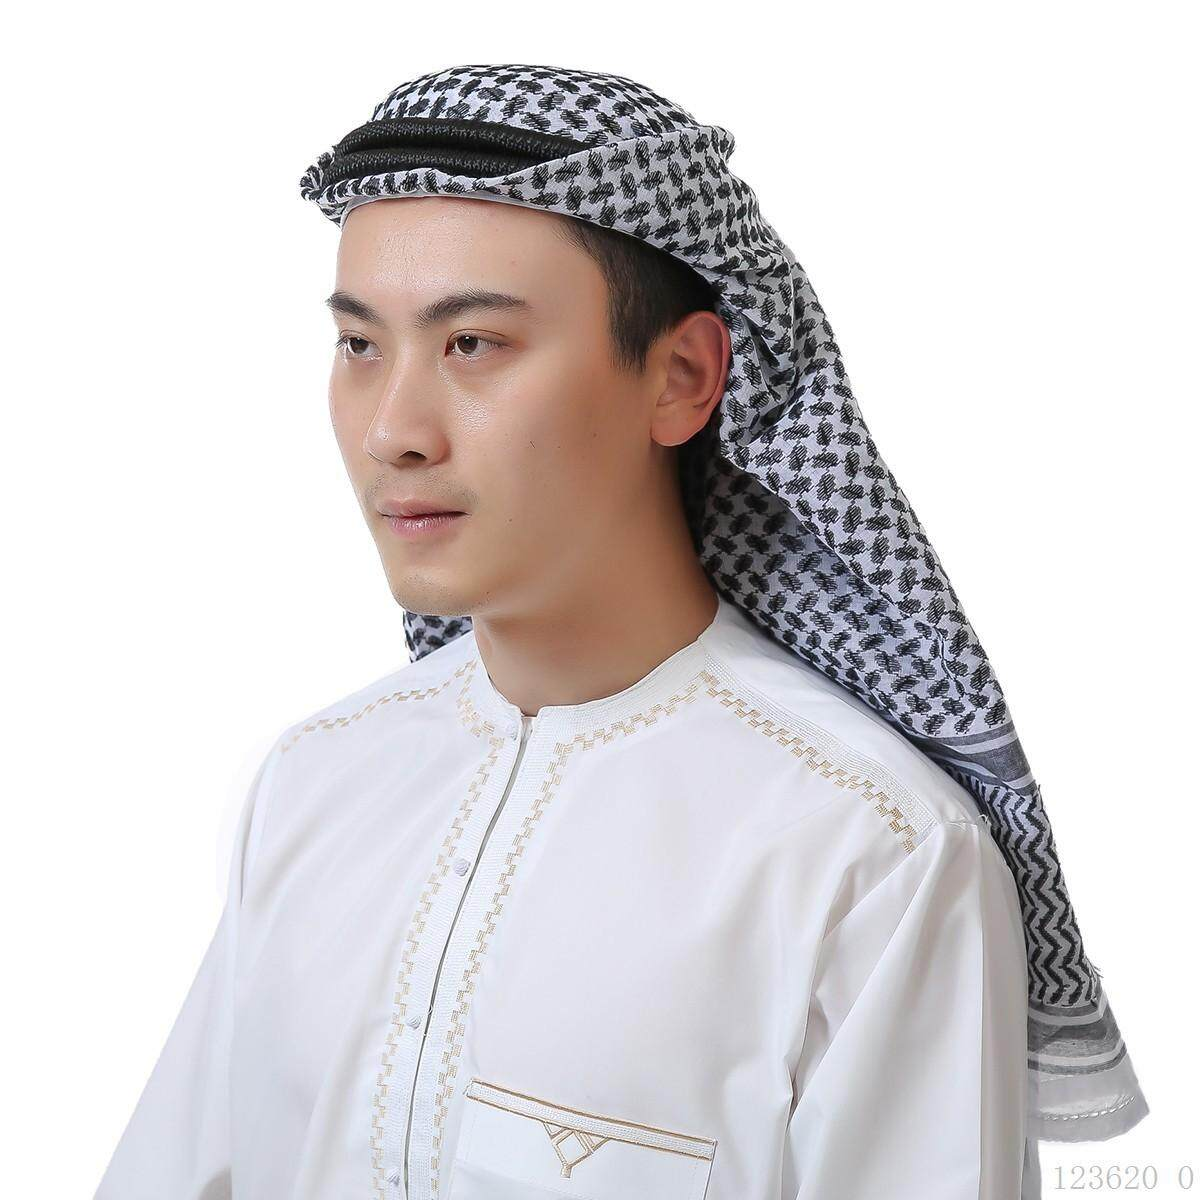 dfce9ee49fbd Muslim Wear for Men for sale - Islamic Wear for Men online brands ...